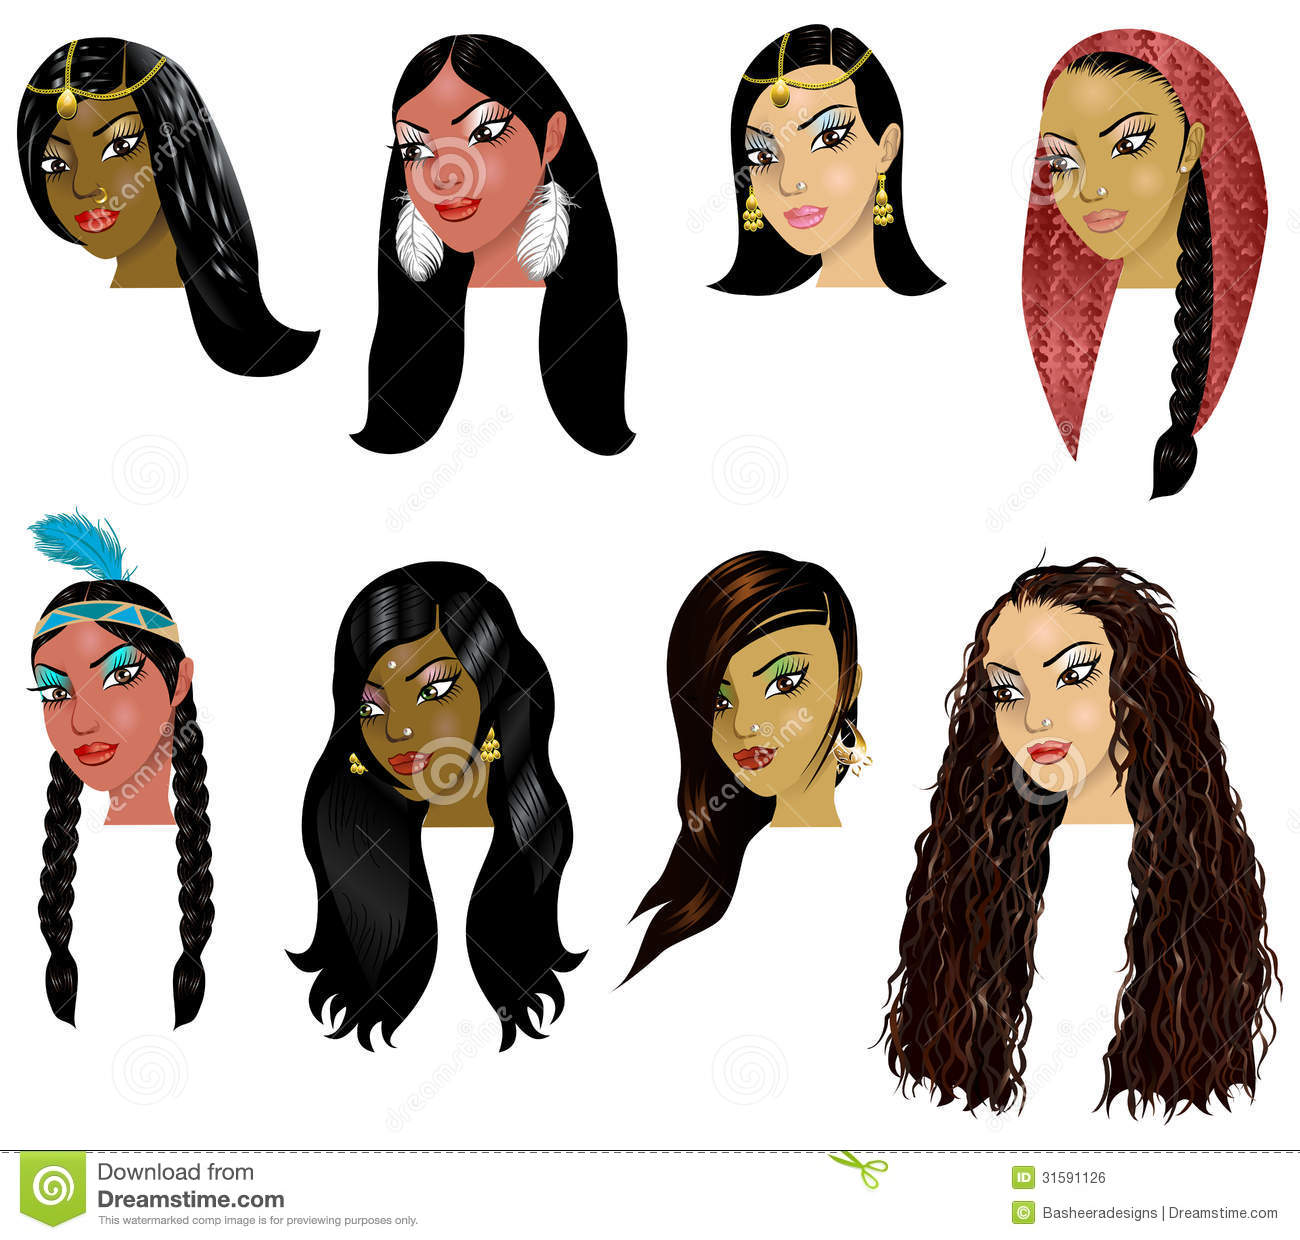 Crowd Of Indian Women Vector Avatars Stock Vector: IndianArabWomenFaces Royalty Free Stock Image